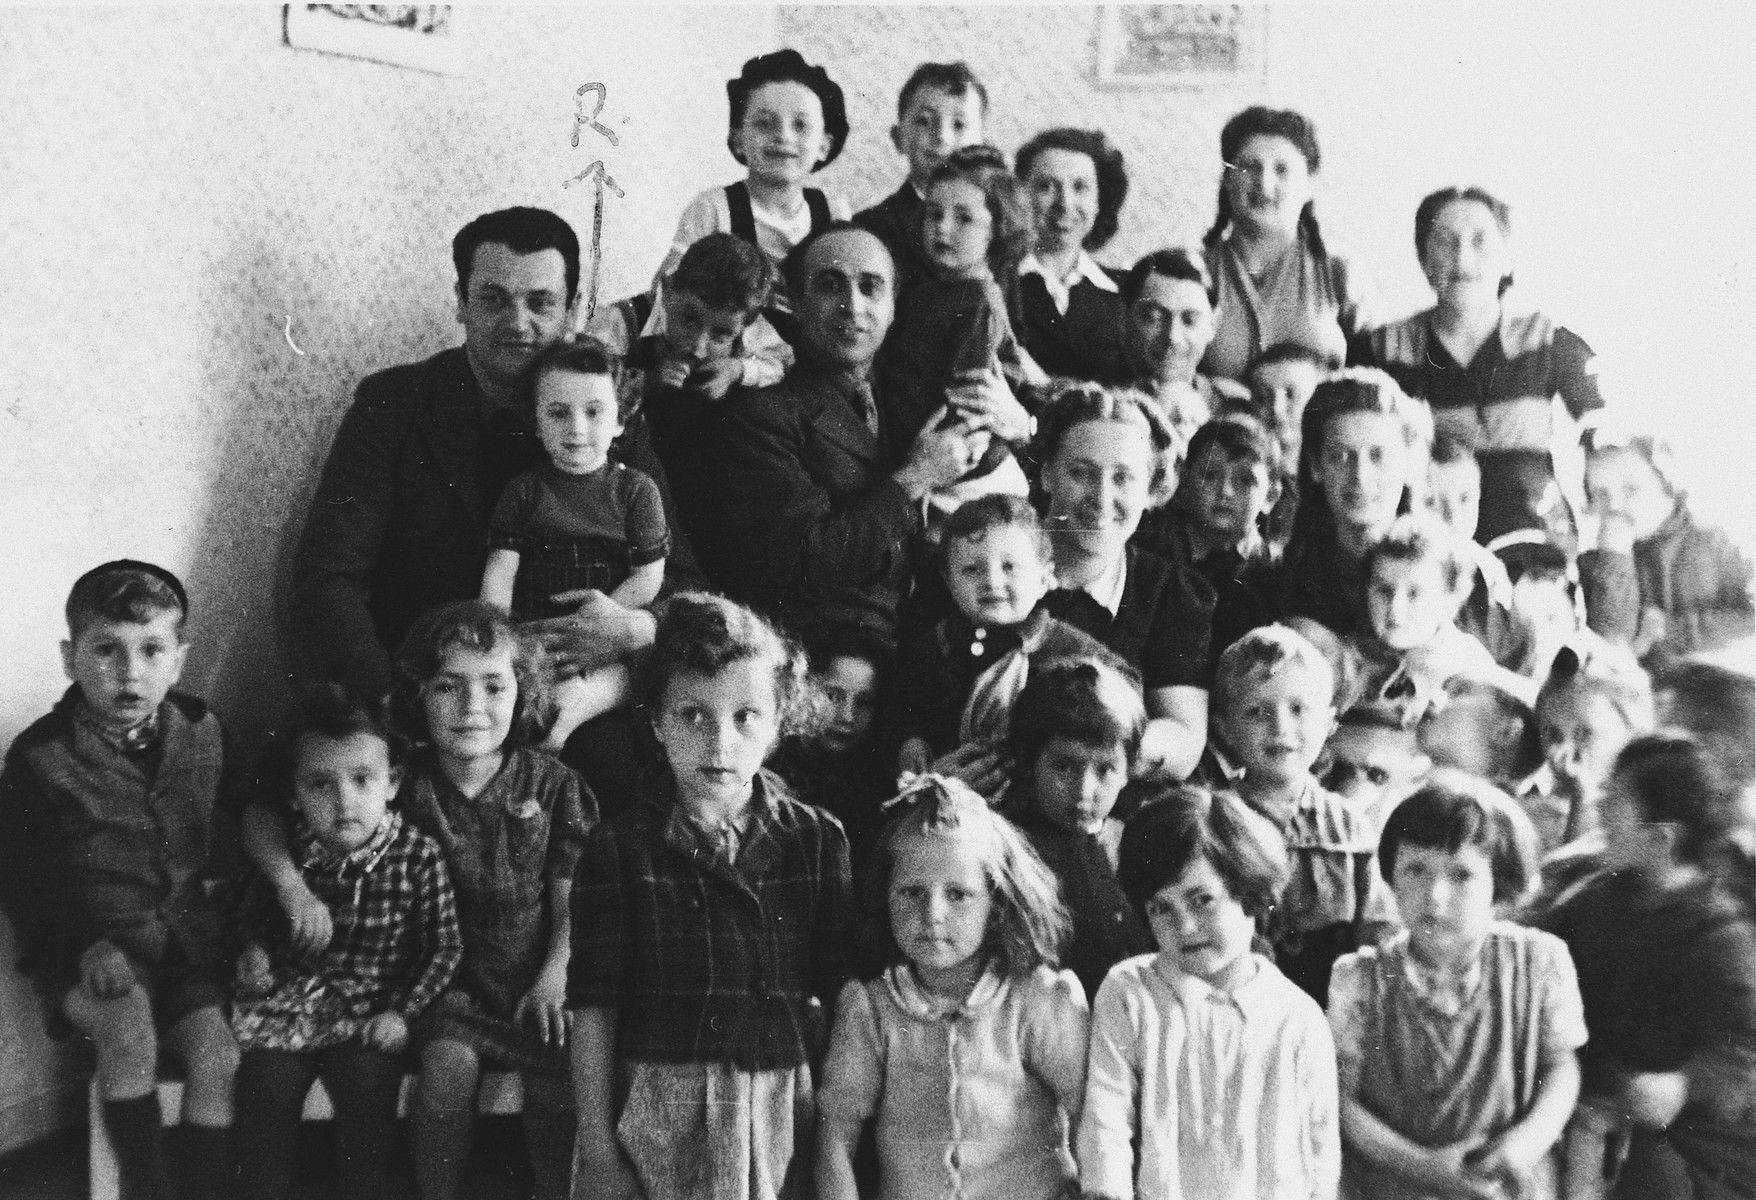 Group portrait of the children in the Wasseralfingen displaced persons' camp.